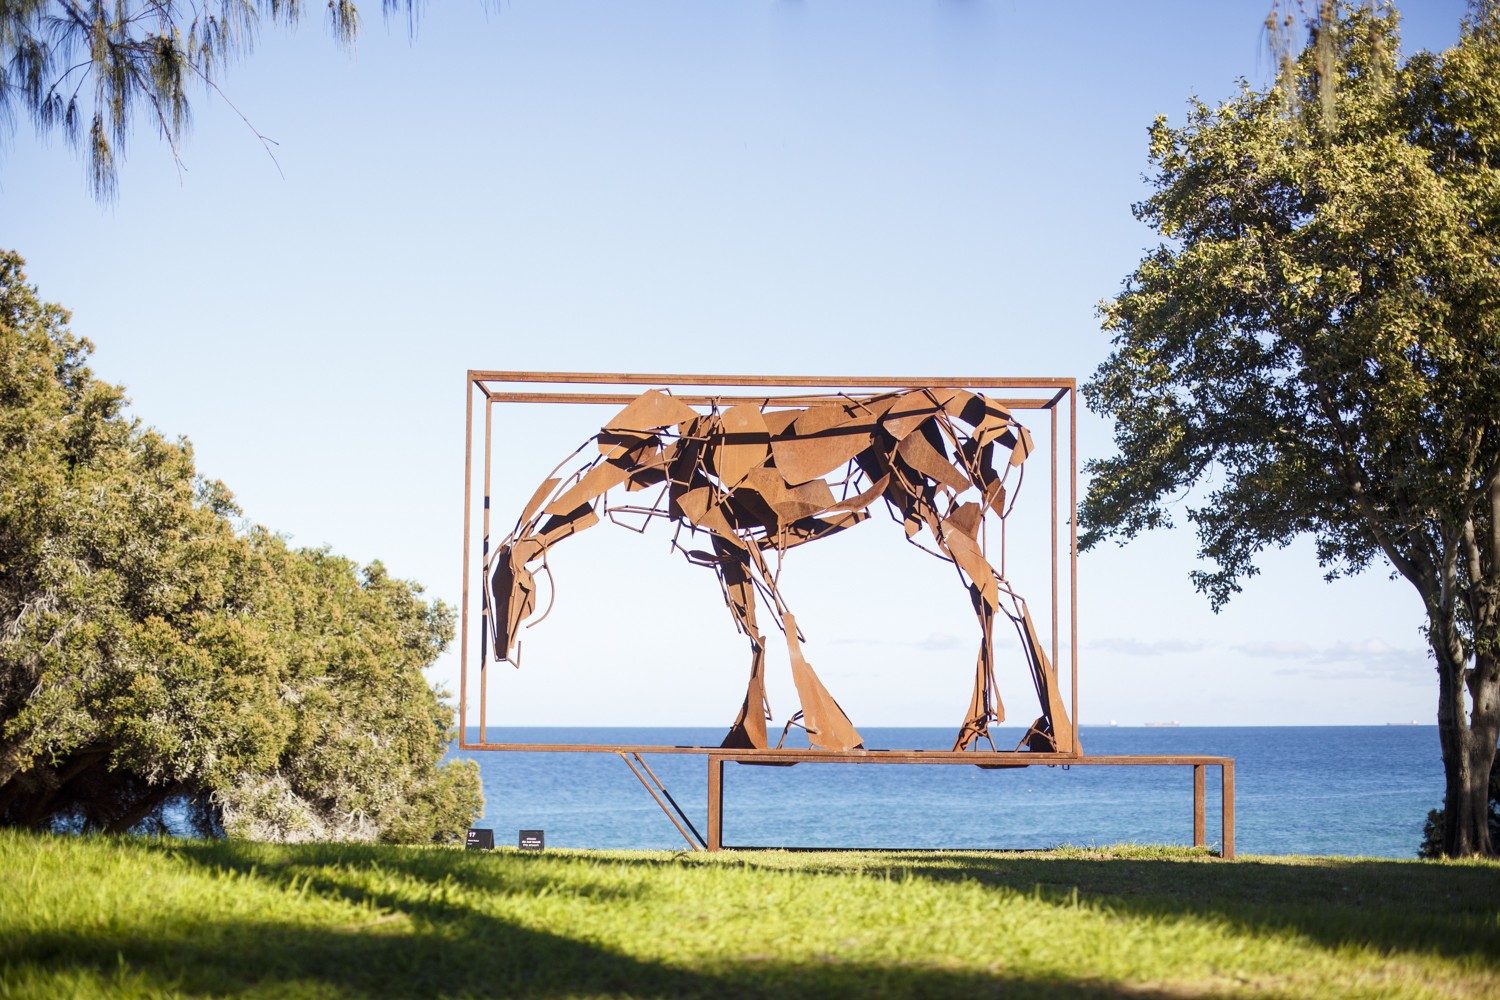 Harrie Fasher, Boxed, Sculpture by the Sea, Cottesloe 2016. Photo Jessica Wyld